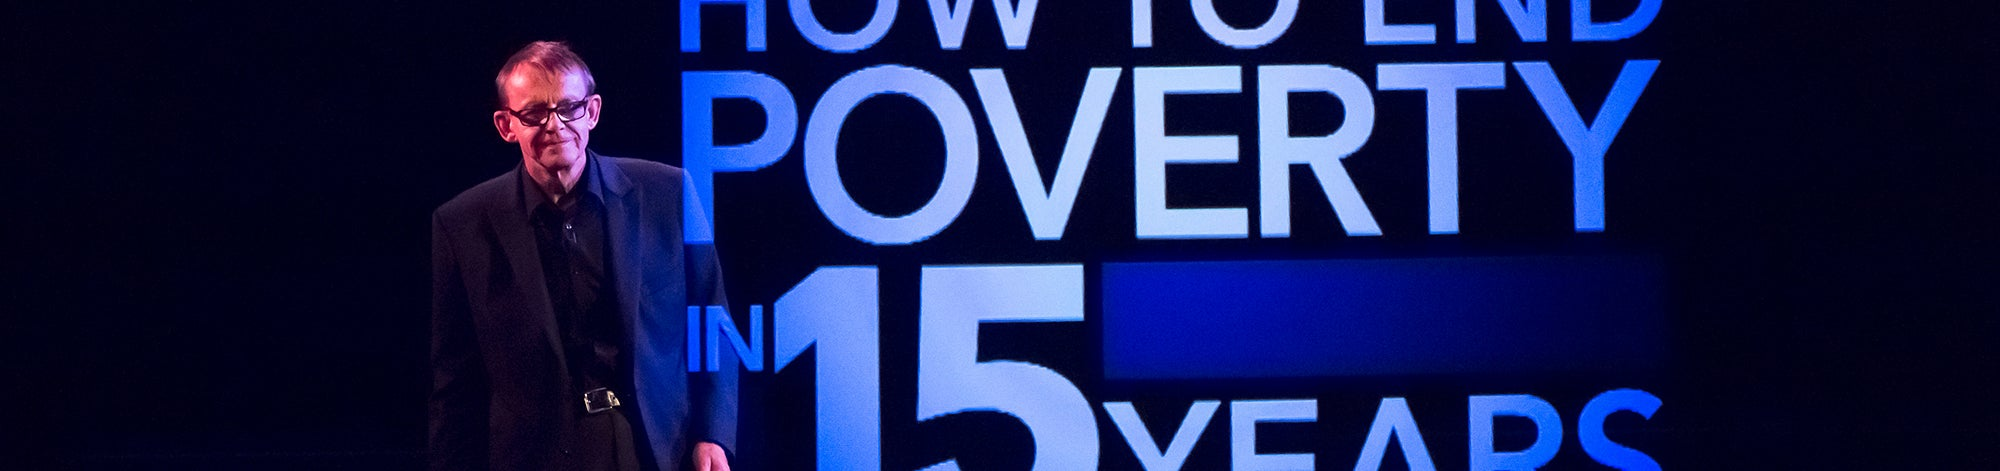 Hans Rosling on How to end poverty in 15 years